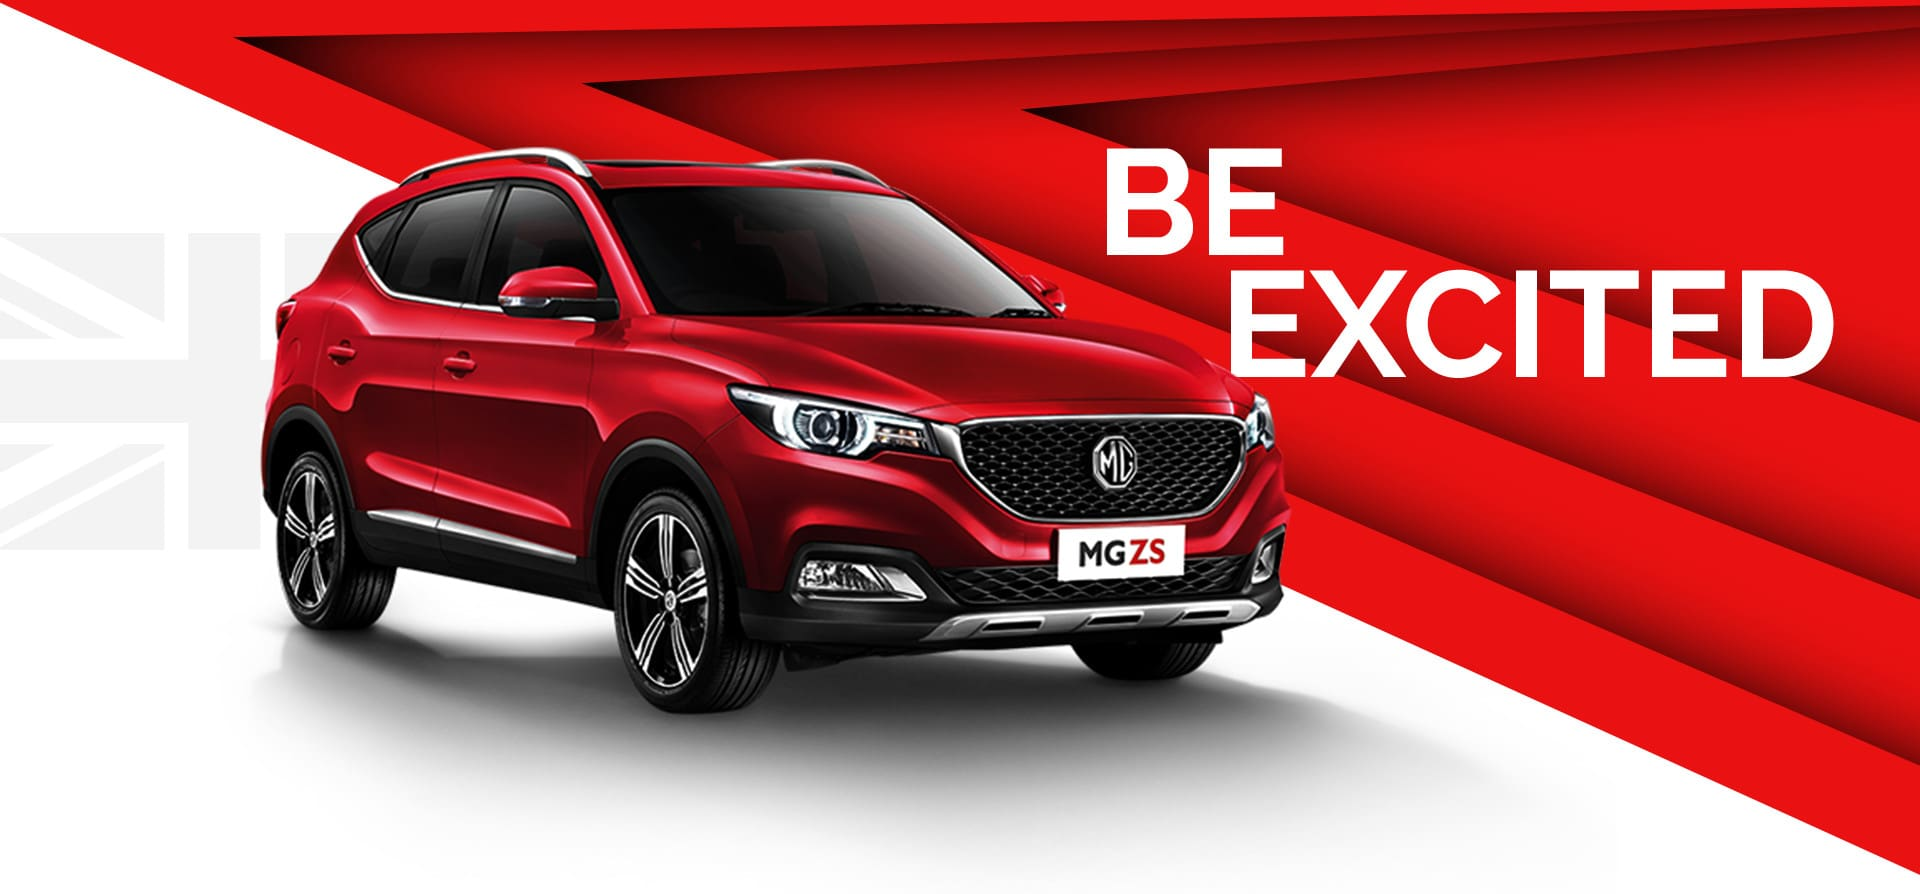 """Say """"Hello, MG!"""" and Drive Home An Attainable British Heritage Car"""